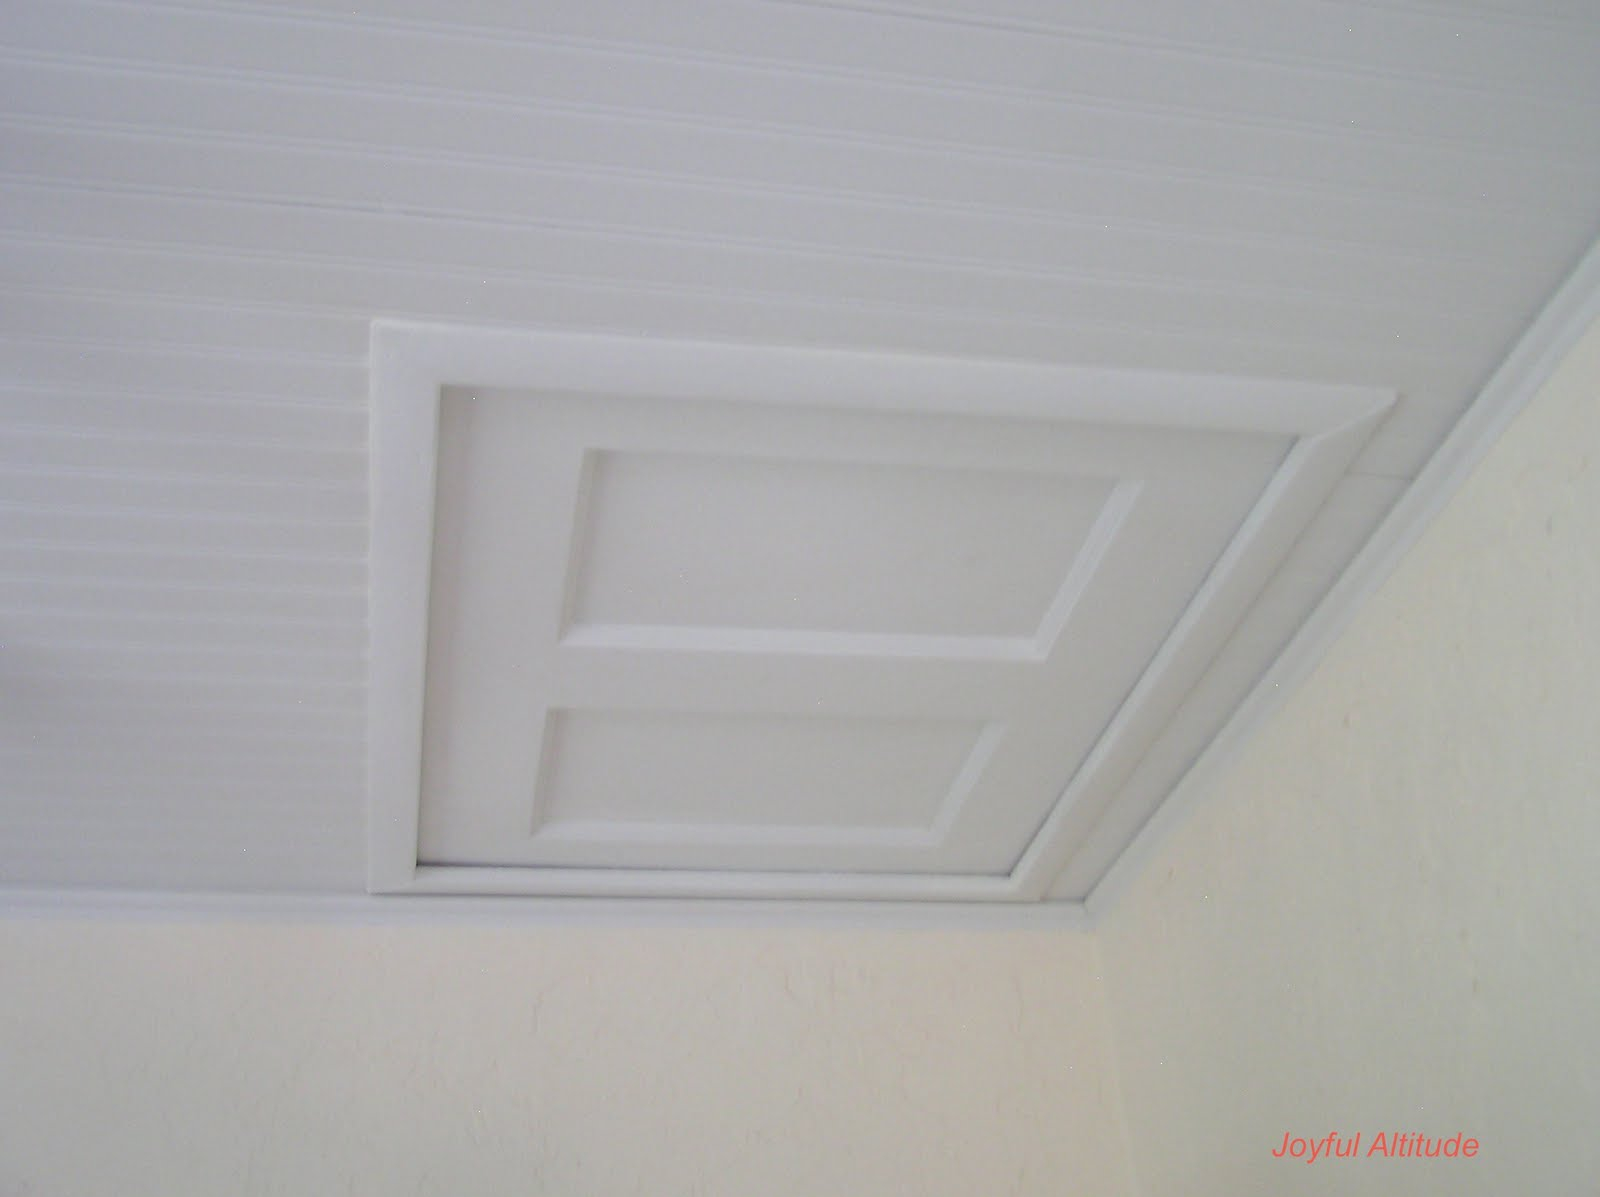 with prepare ceiling delightful lowes panel plumbing bathroom access regard ideas within to door doors architecture panels drywall